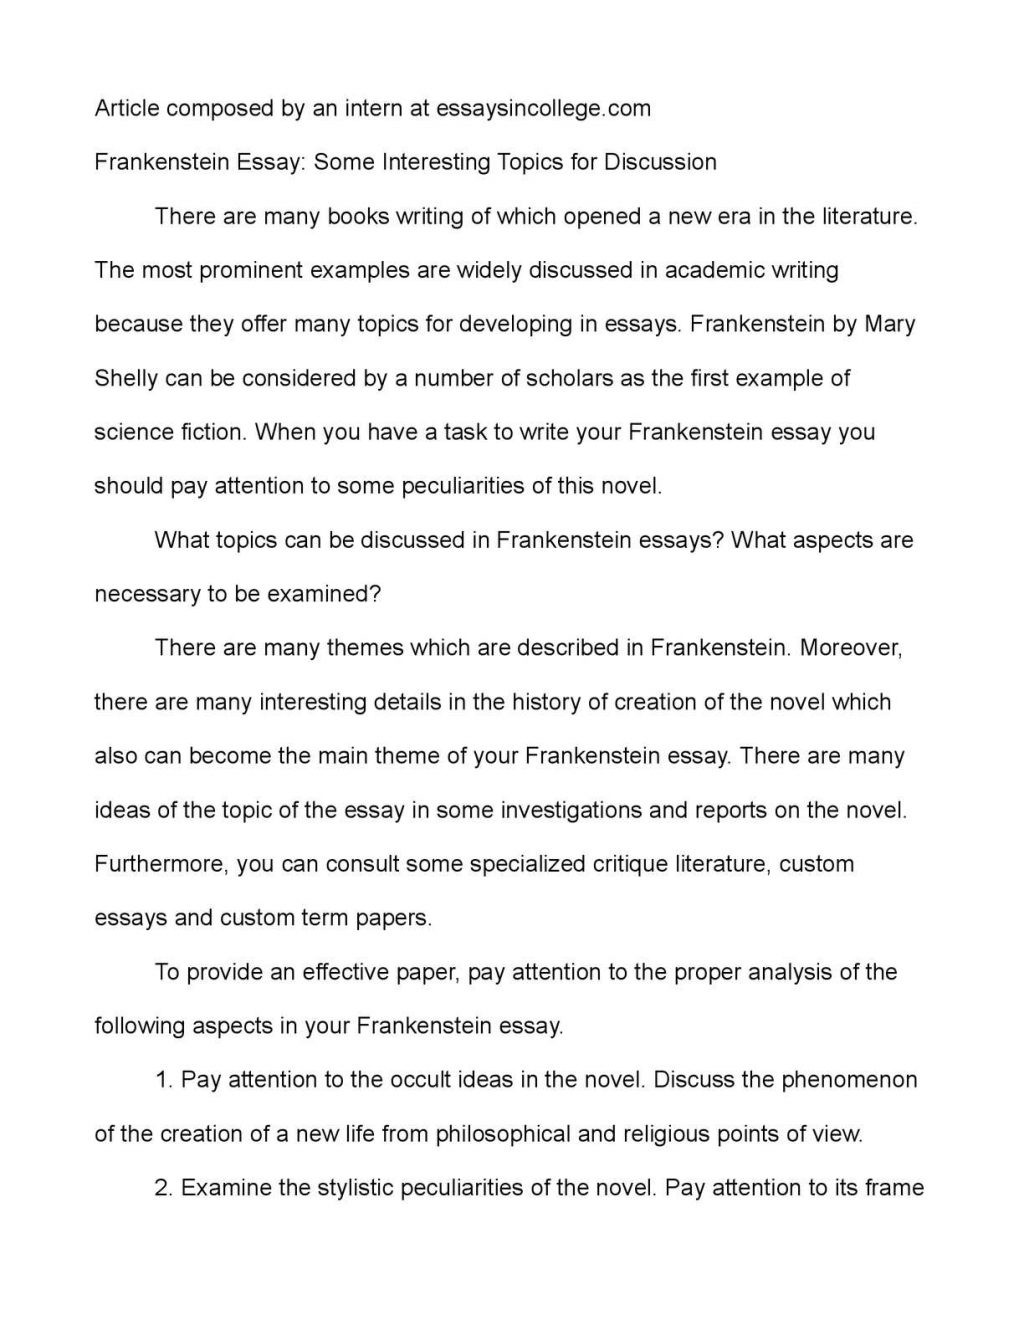 013 Why Should Minimum Wageed Essay Collection Of Solutions Fabulous Template Writing Definitiony Examples Valid Xat Sample Unusual Wage Be Raised We Raise Not Increase Large